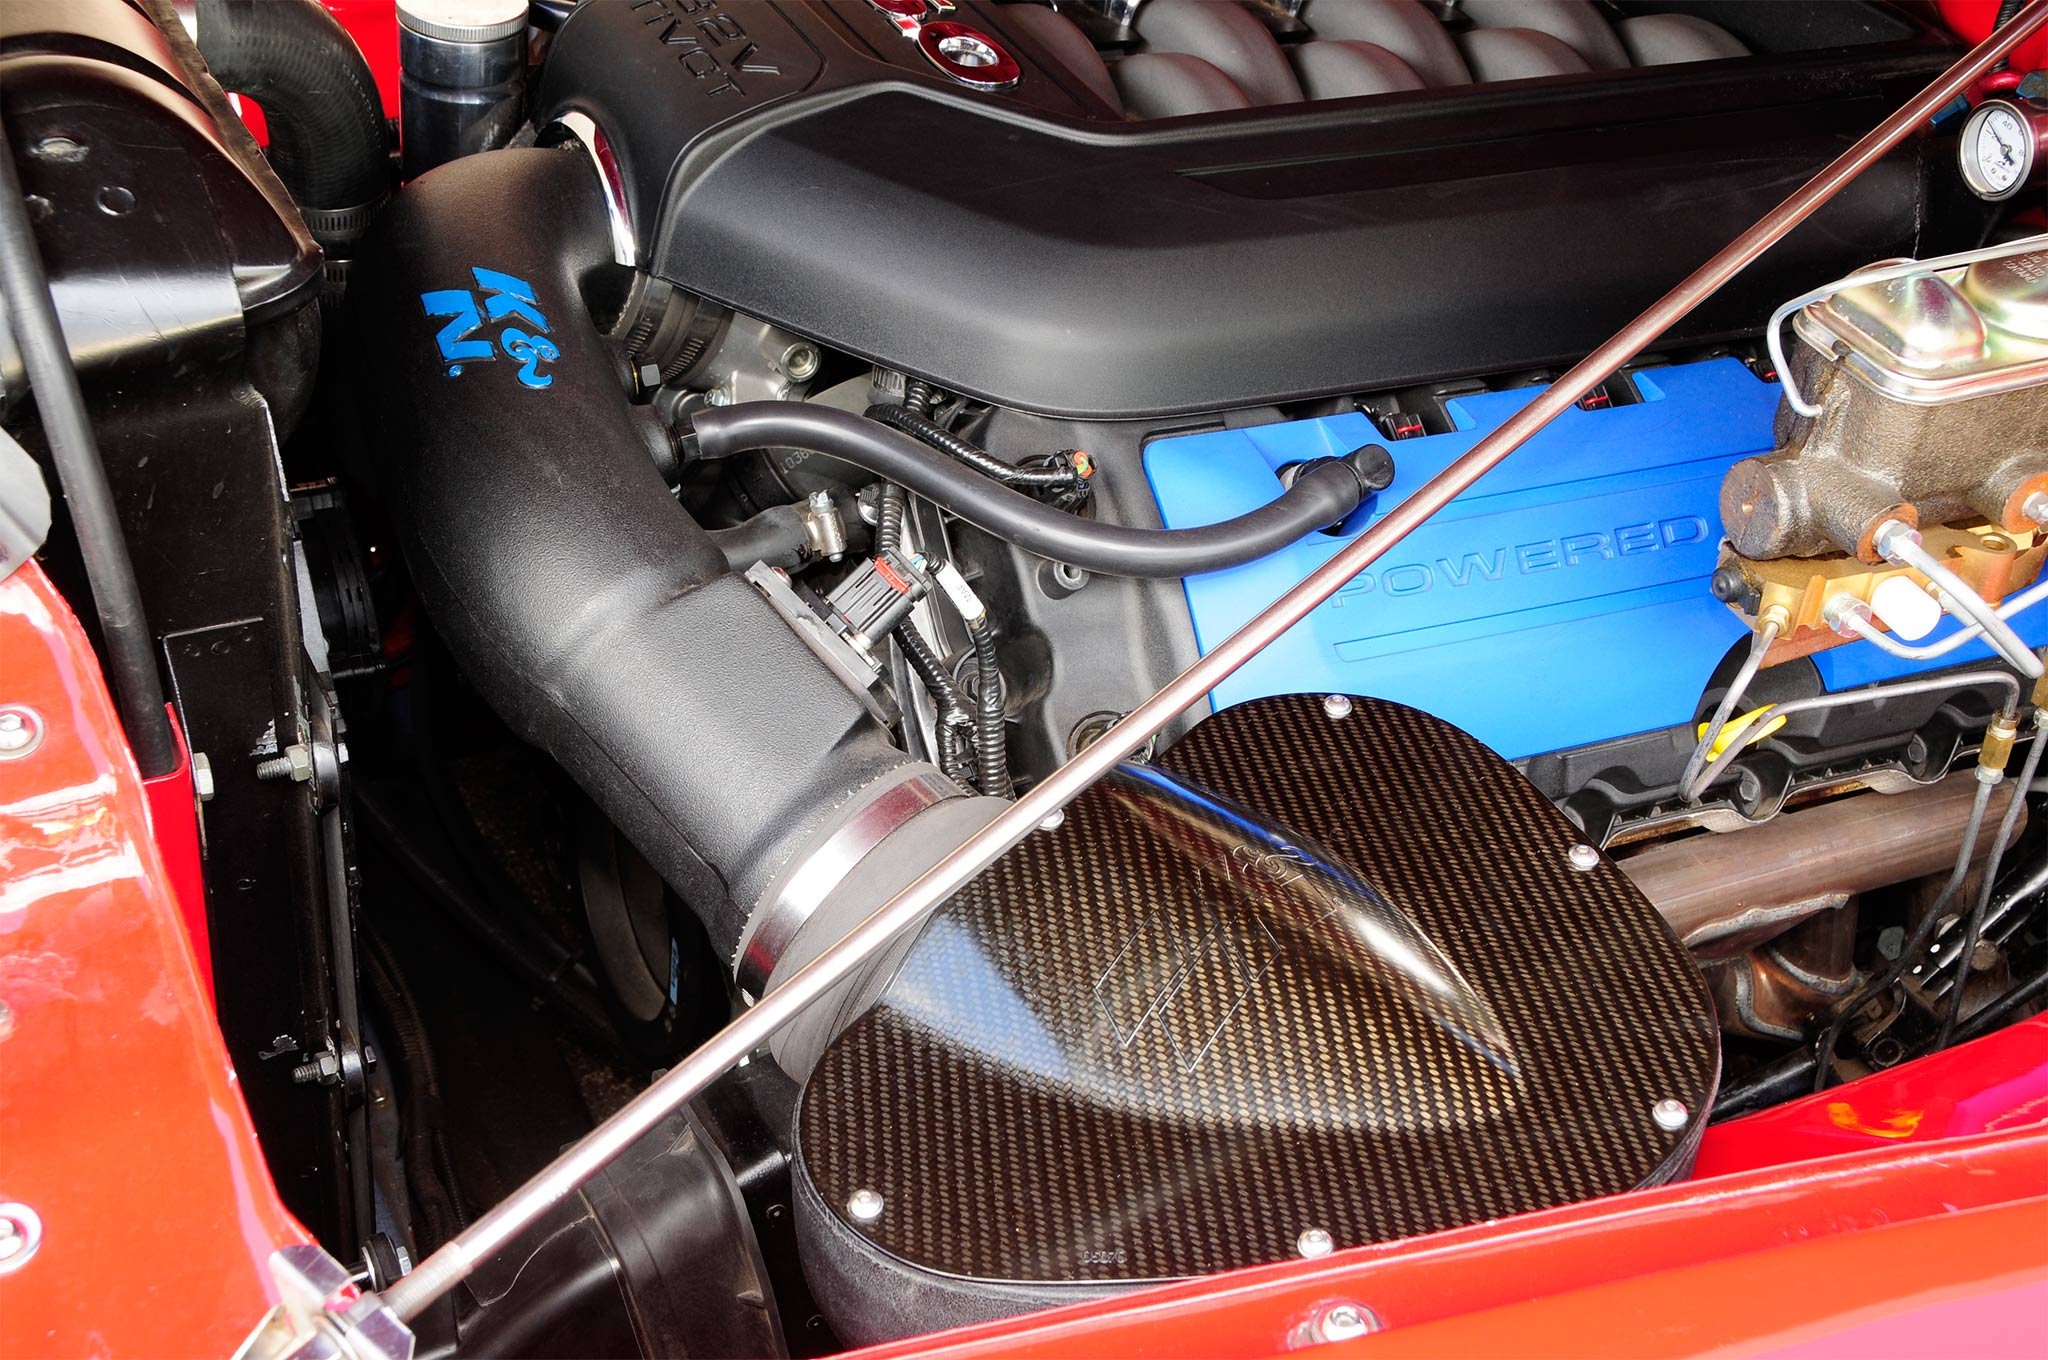 A K&N cold air intake with carbon fiber accents adds just a bit of racy detail to the engine as well as increase performance.